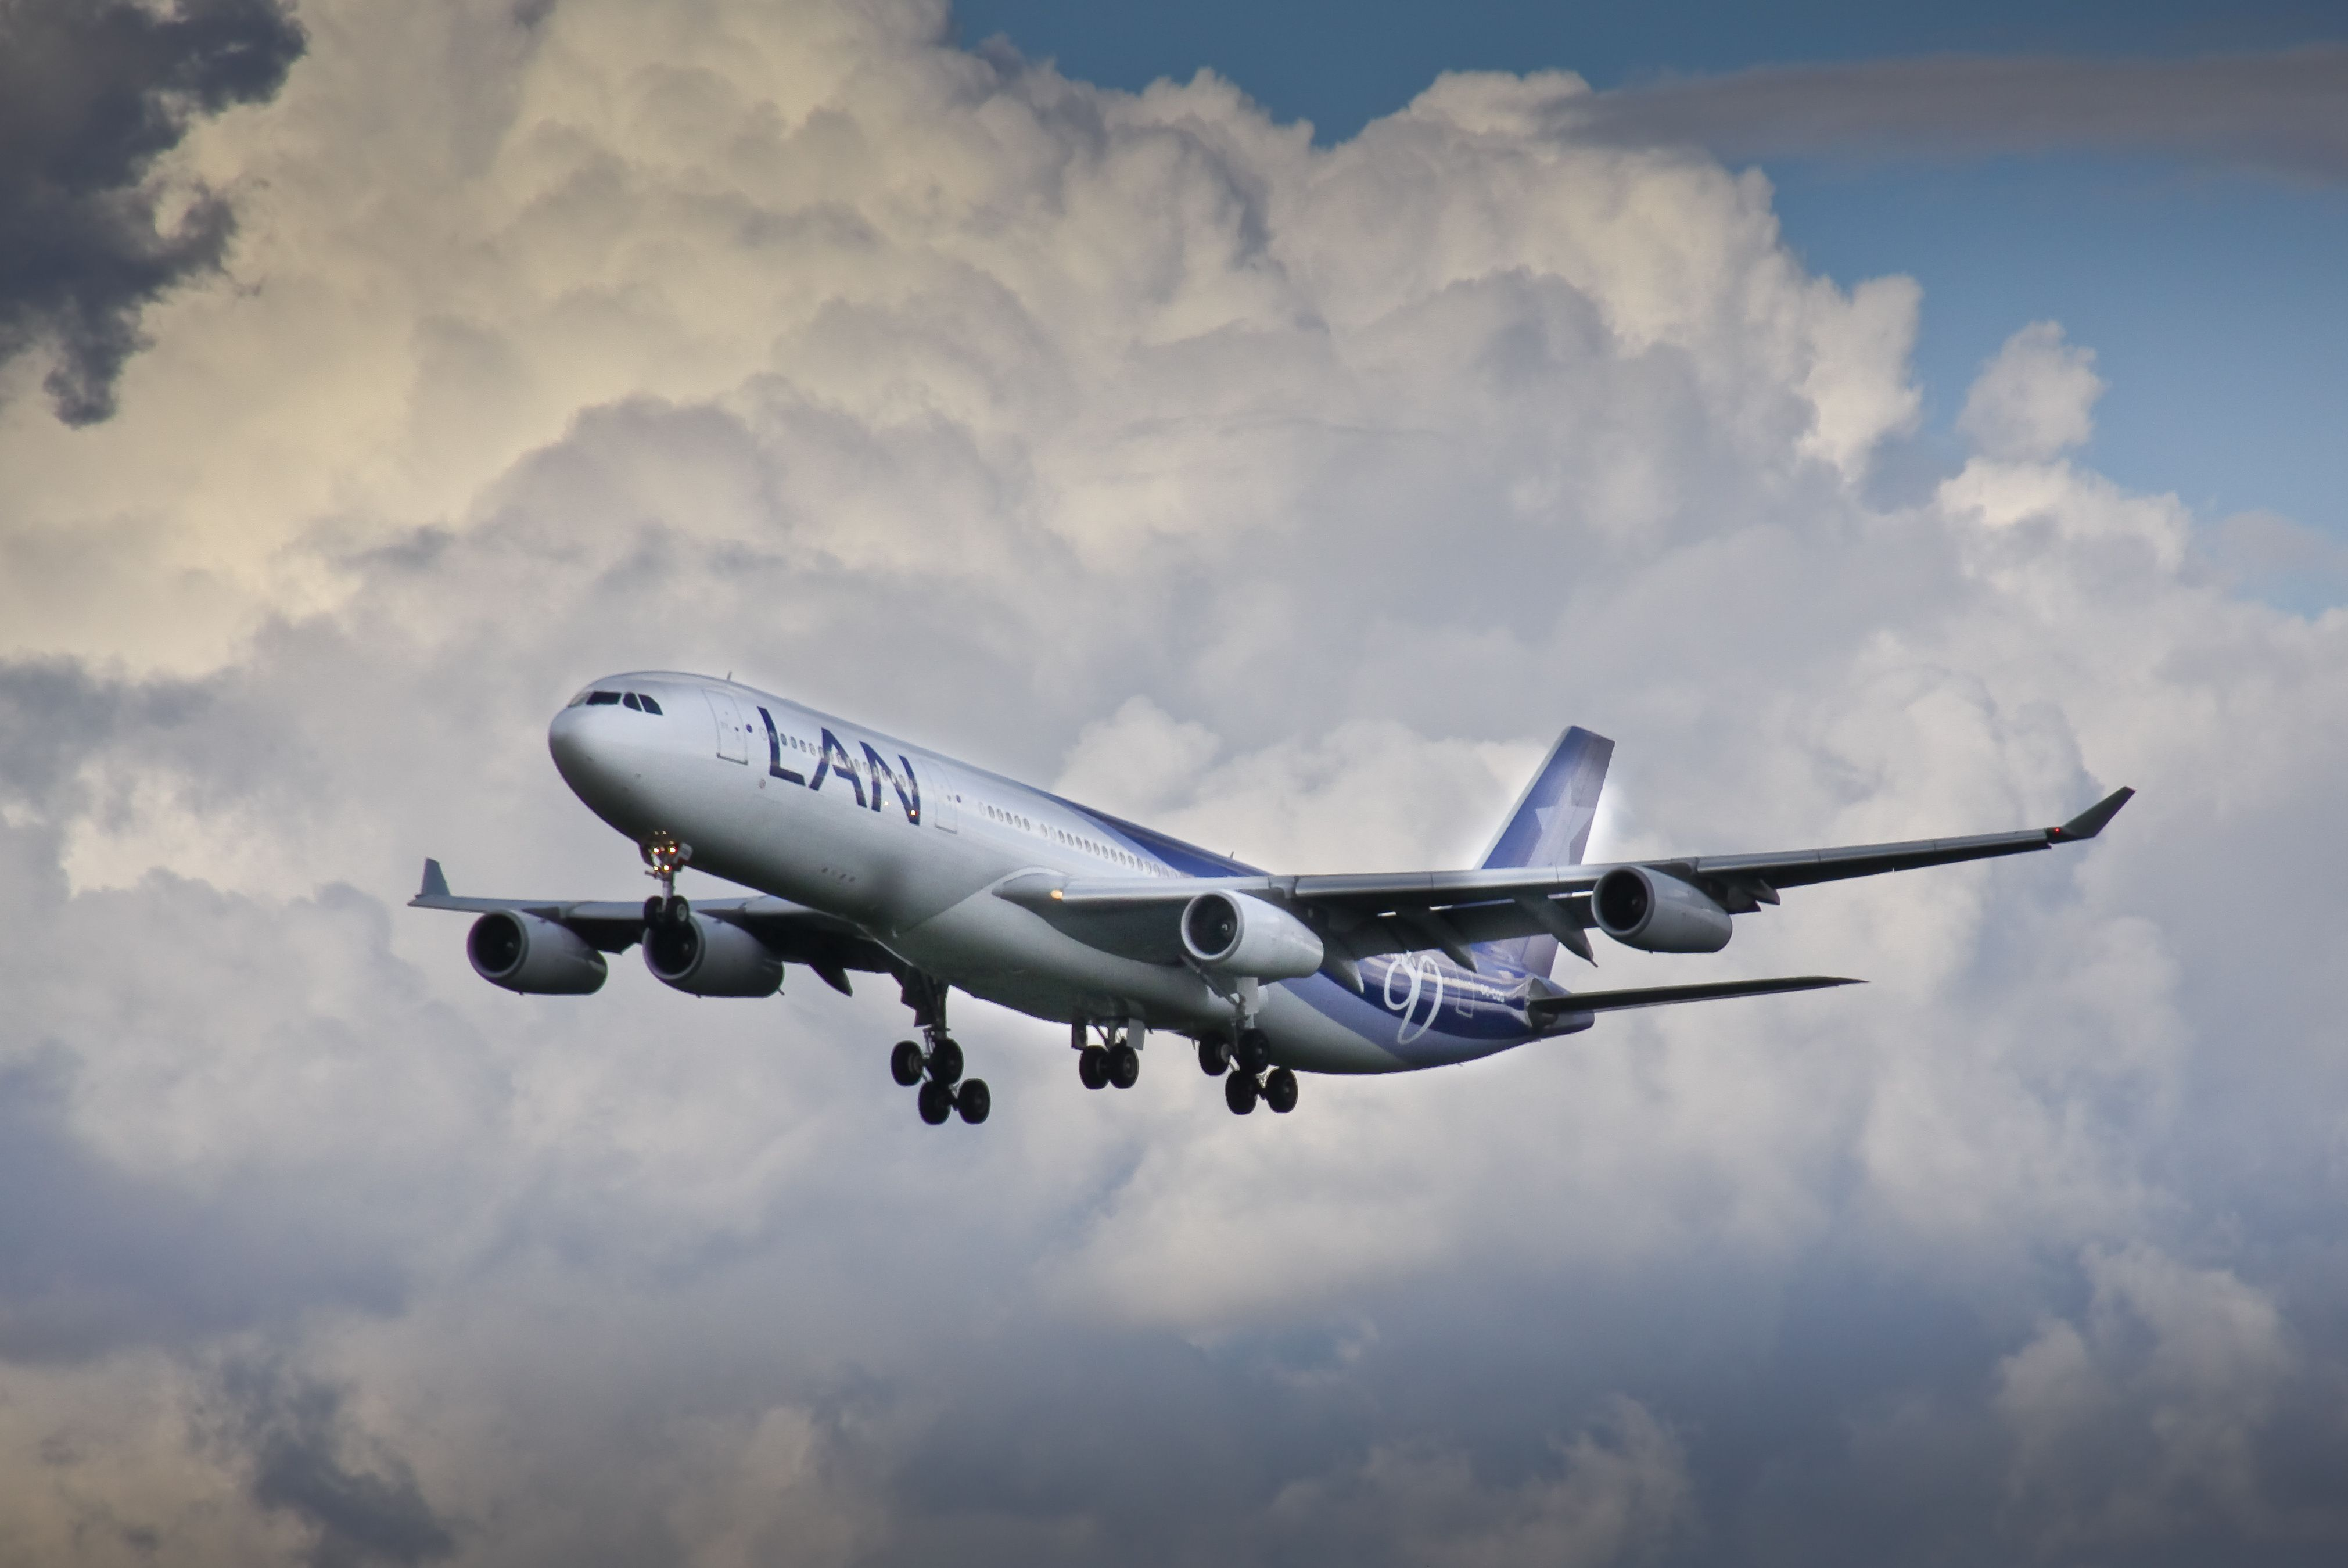 Picture Airbus A340